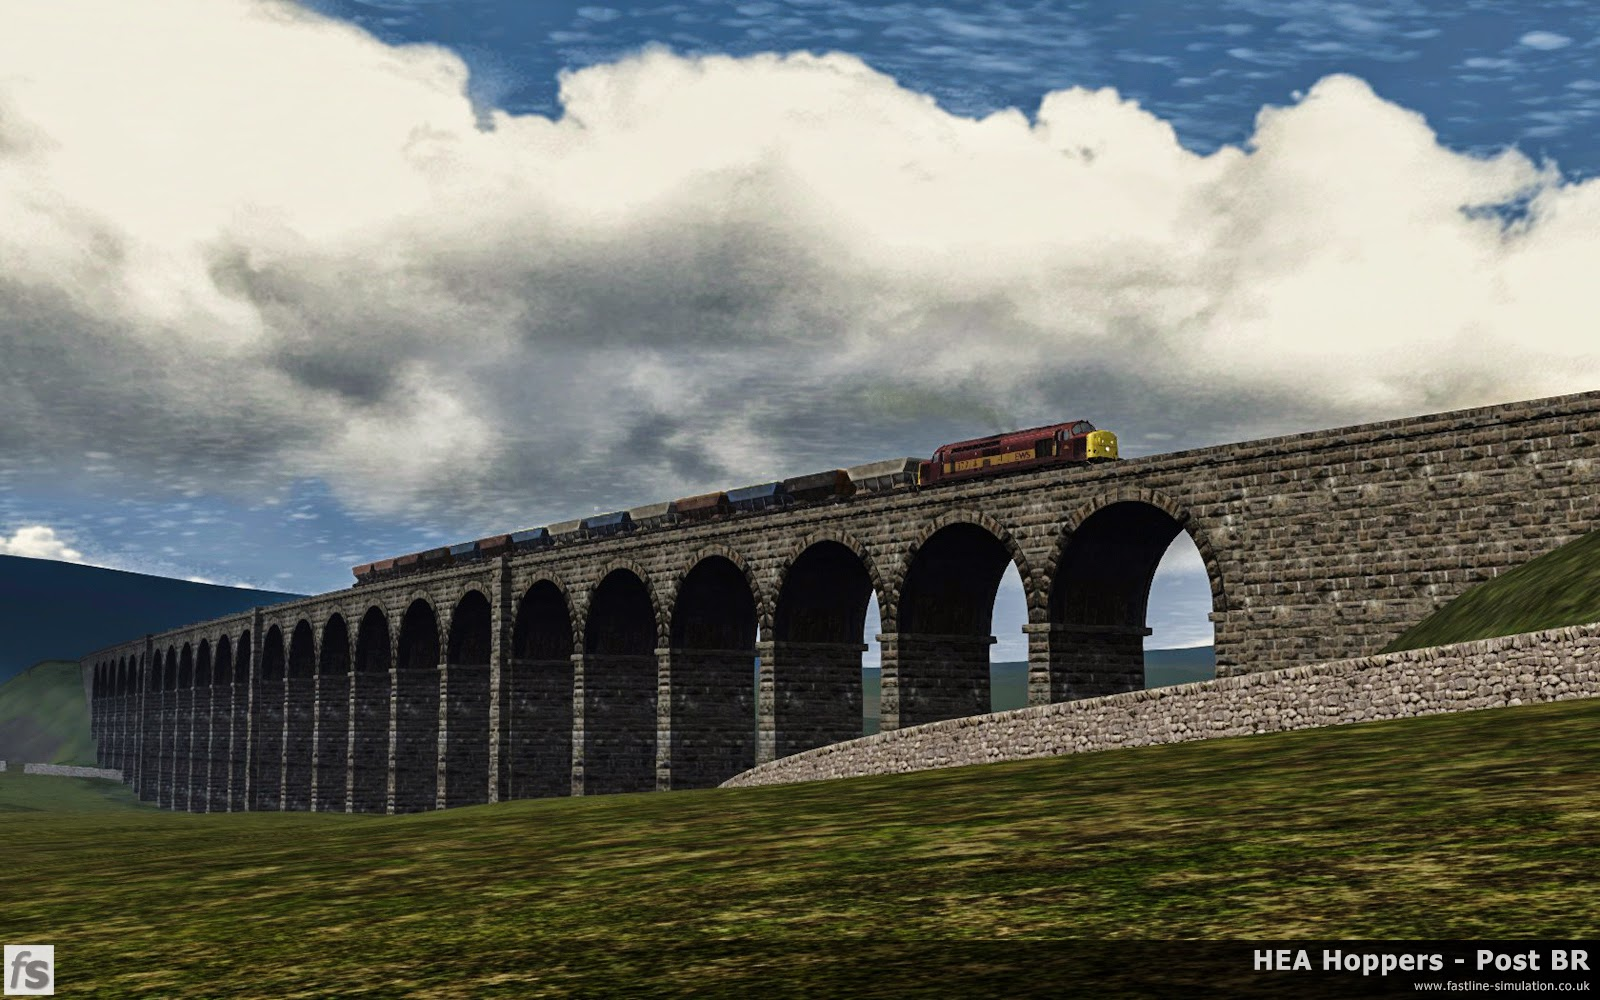 HEA Hoppers - Post BR: Class 37/7 37718 hauls a rake of HEA hoppers recently removed from store in assorted liveries over Ribblehead viaduct on their way to be converted into MEA mineral wagons.